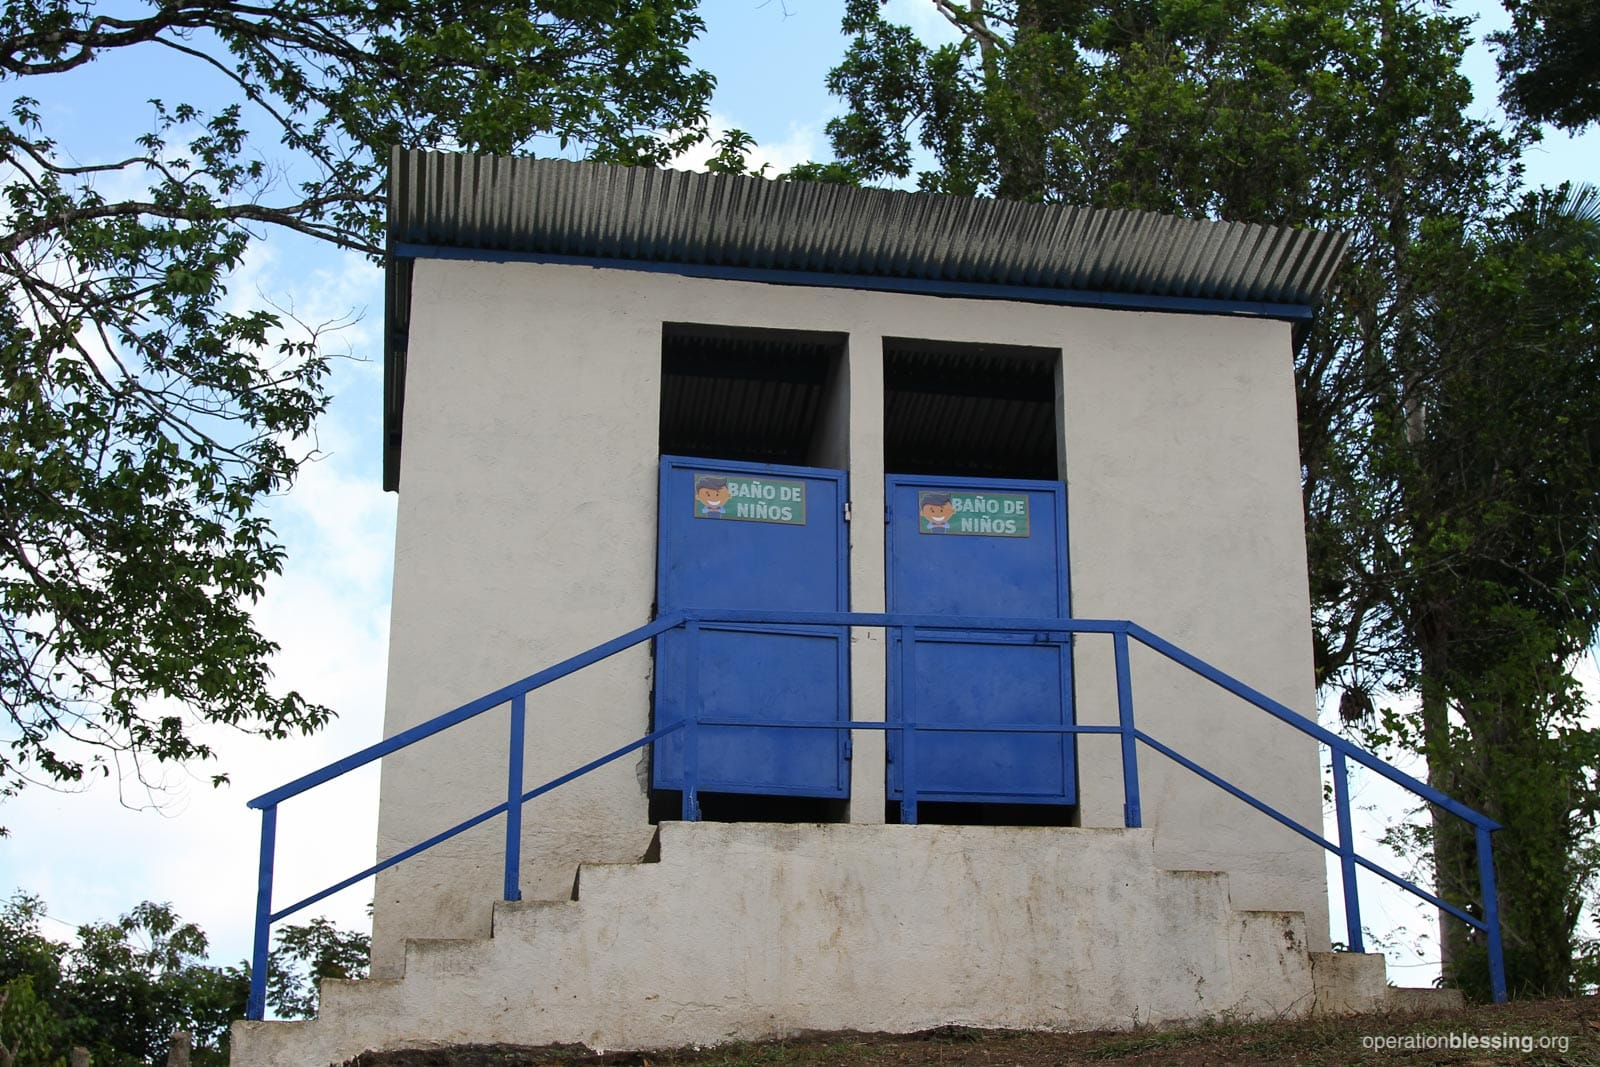 New bathrooms built by Operation Blessing.